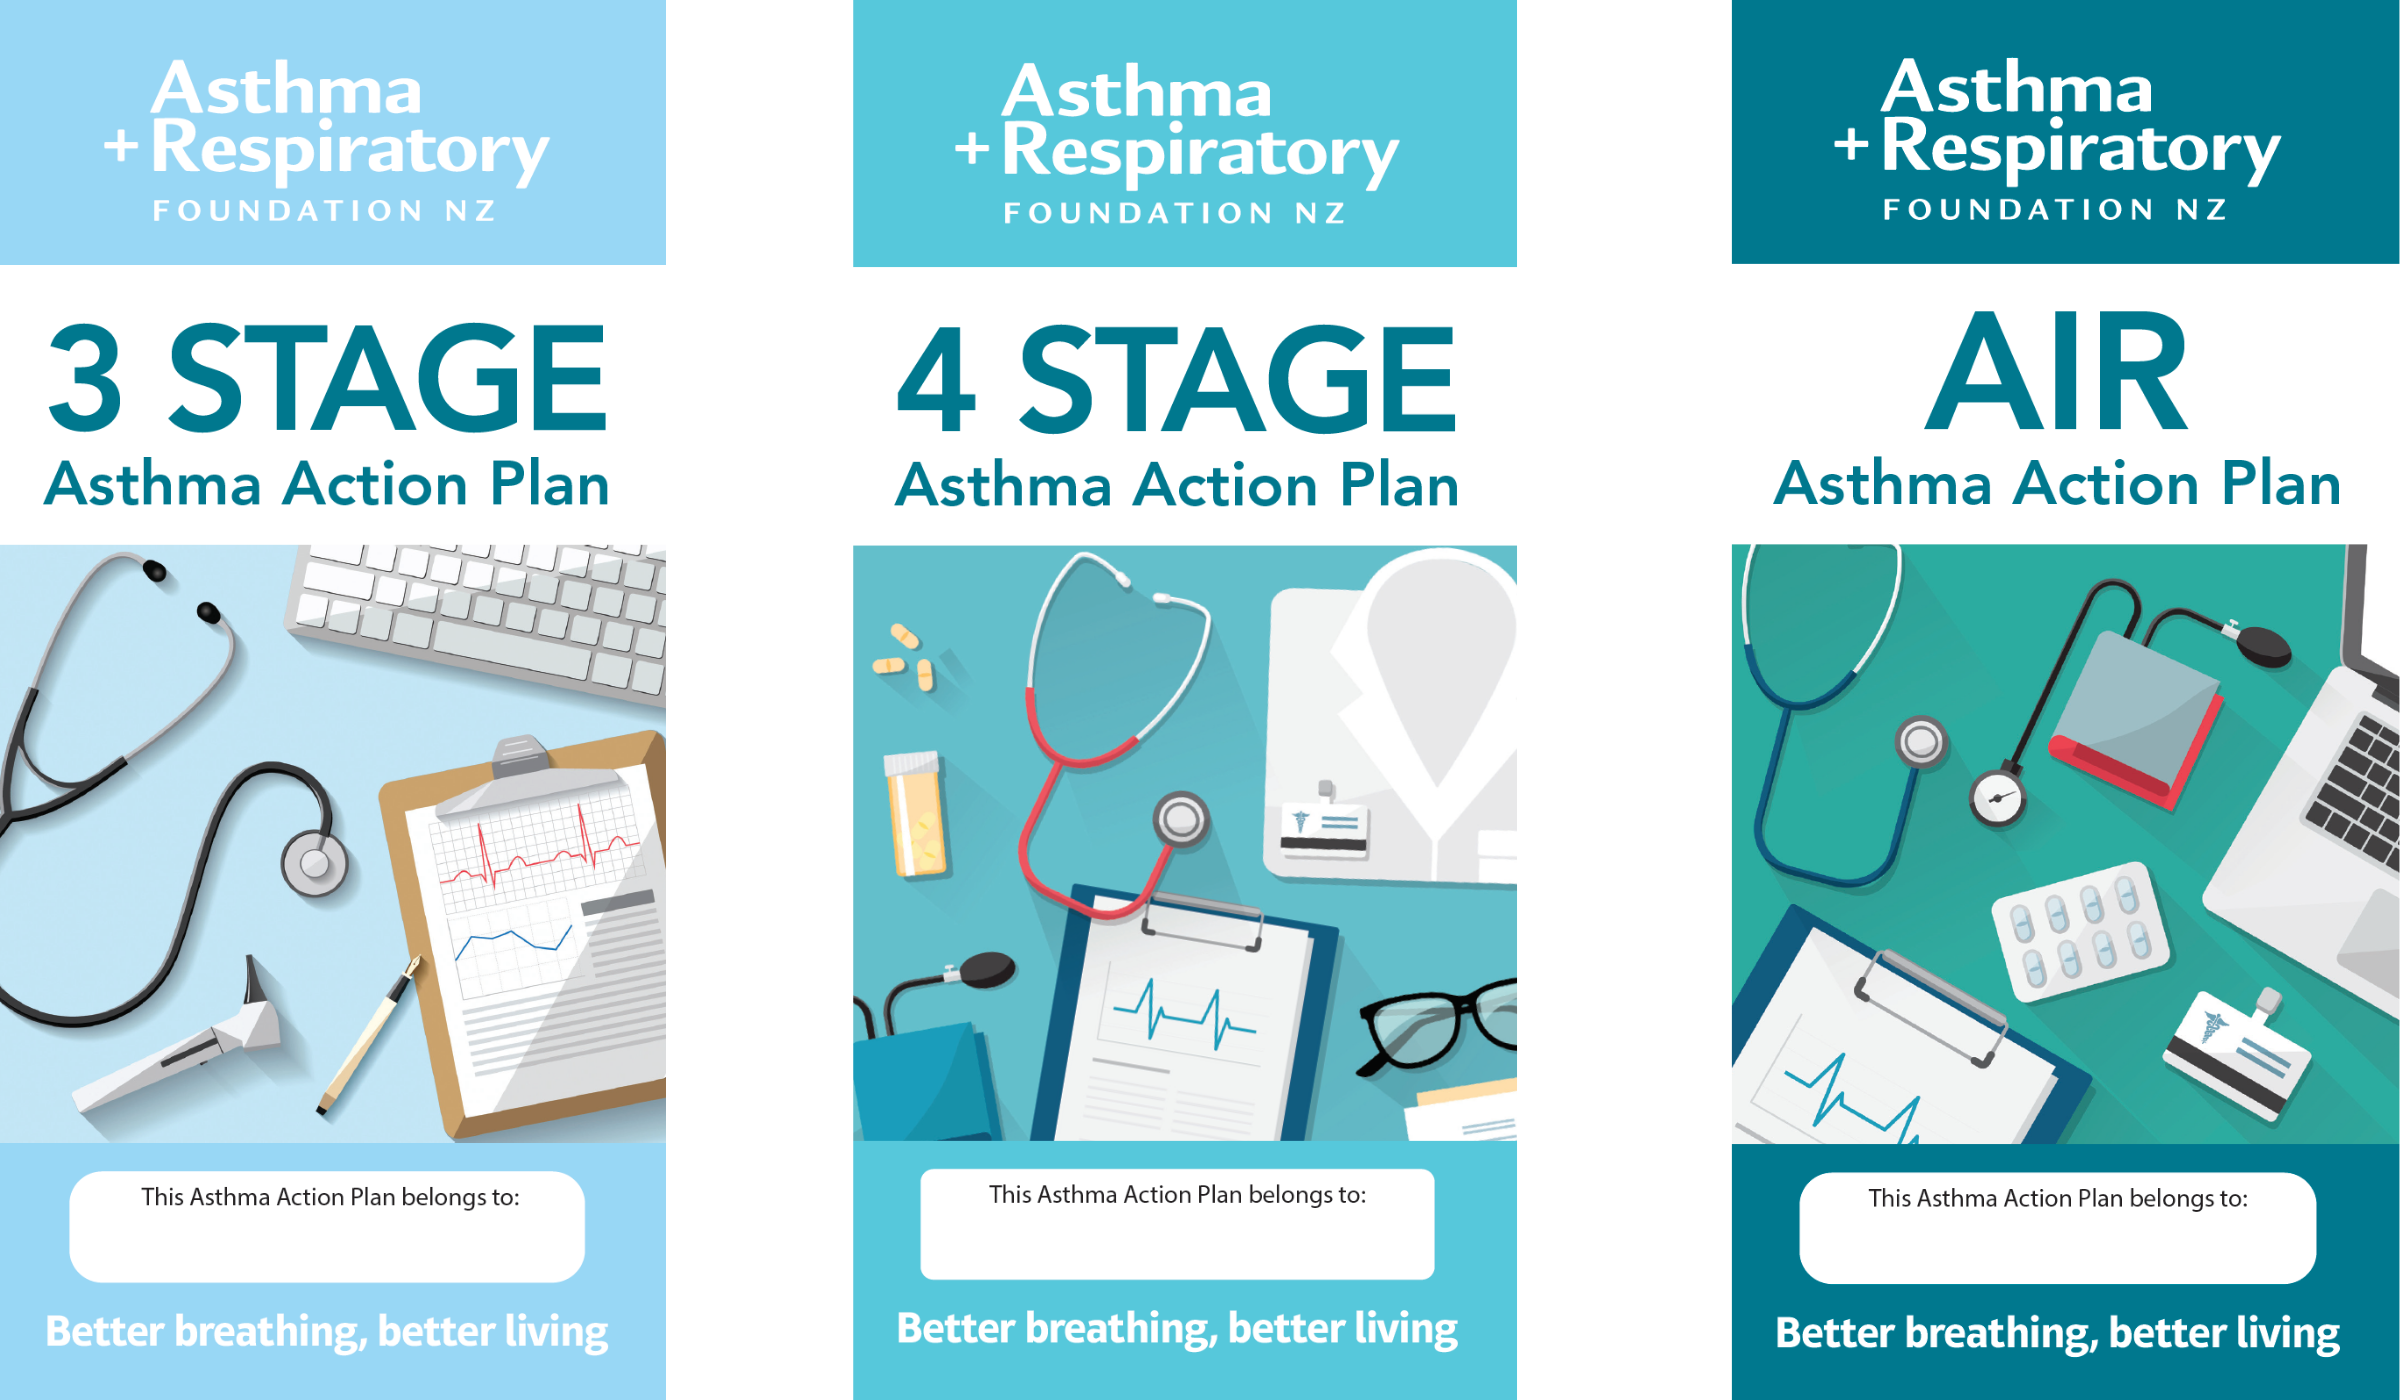 Adult Asthma Action Plans